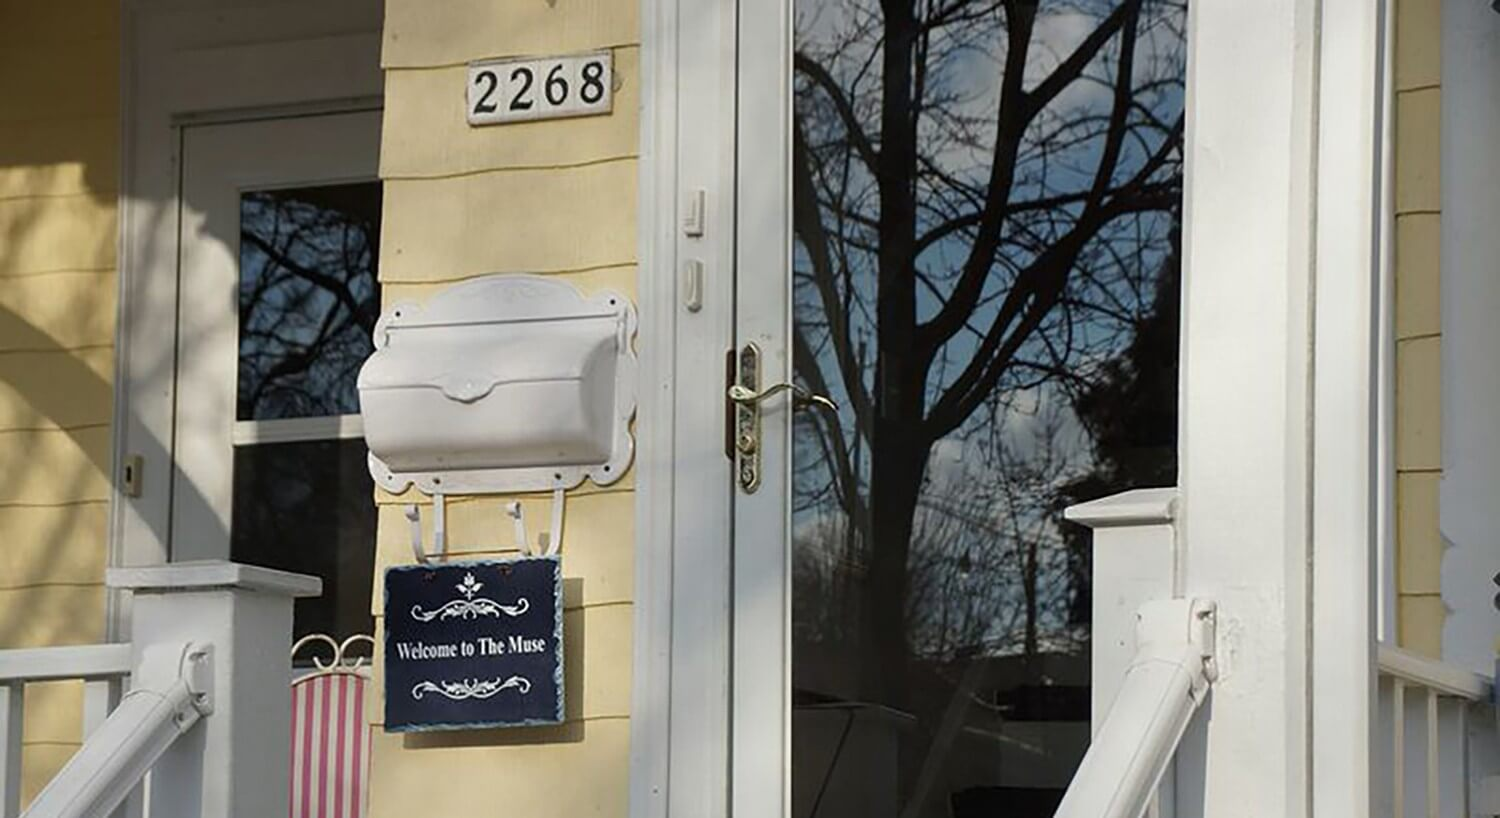 Front door of yellow house with white metal mailbox and sign that says, Welcome to The Muse.